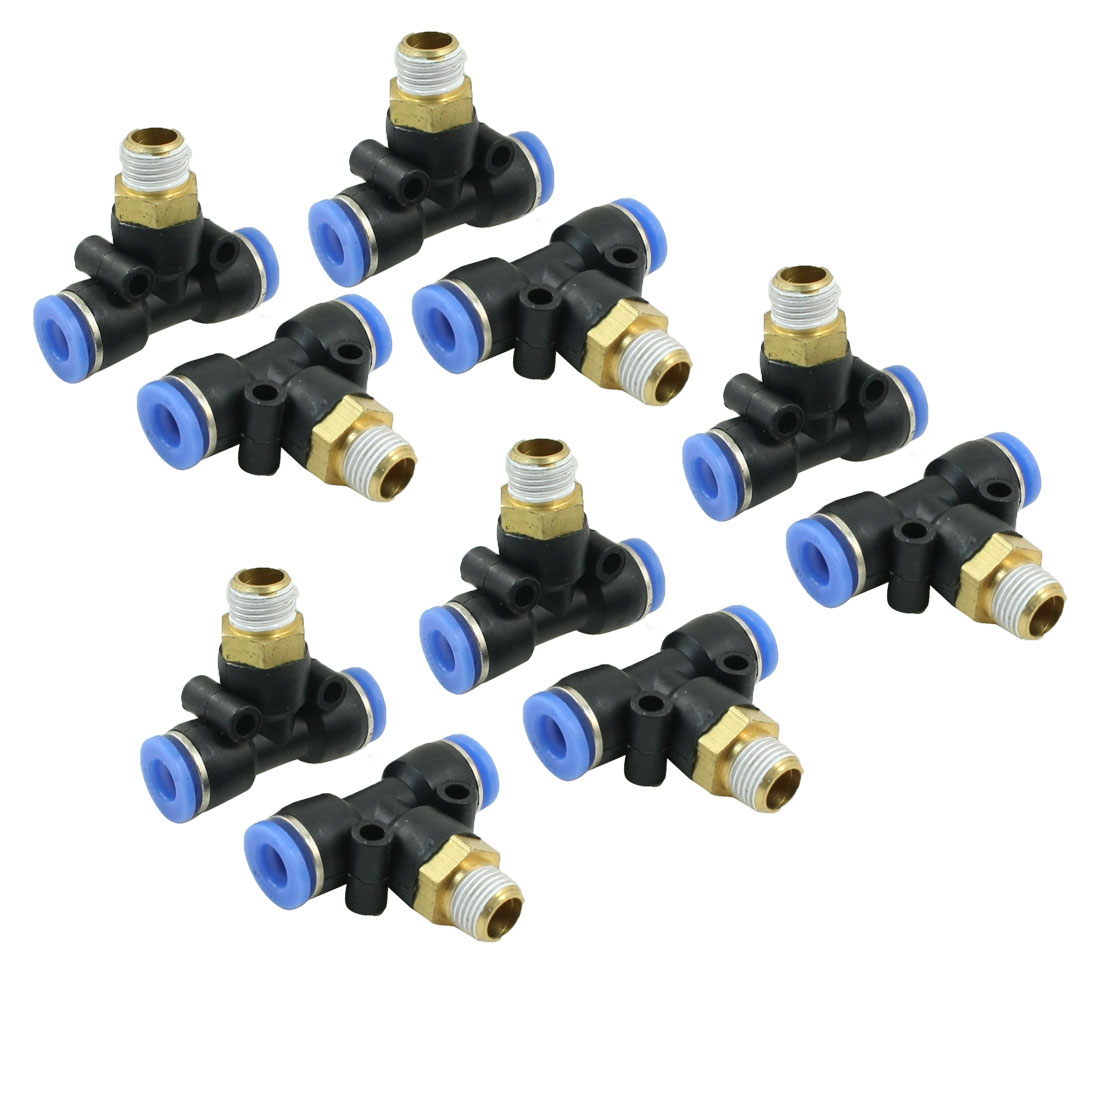 "10pcs Pneumatic 8mmx1/8""PT Male Thread T Design 3 Way Connector Quick Coupler"